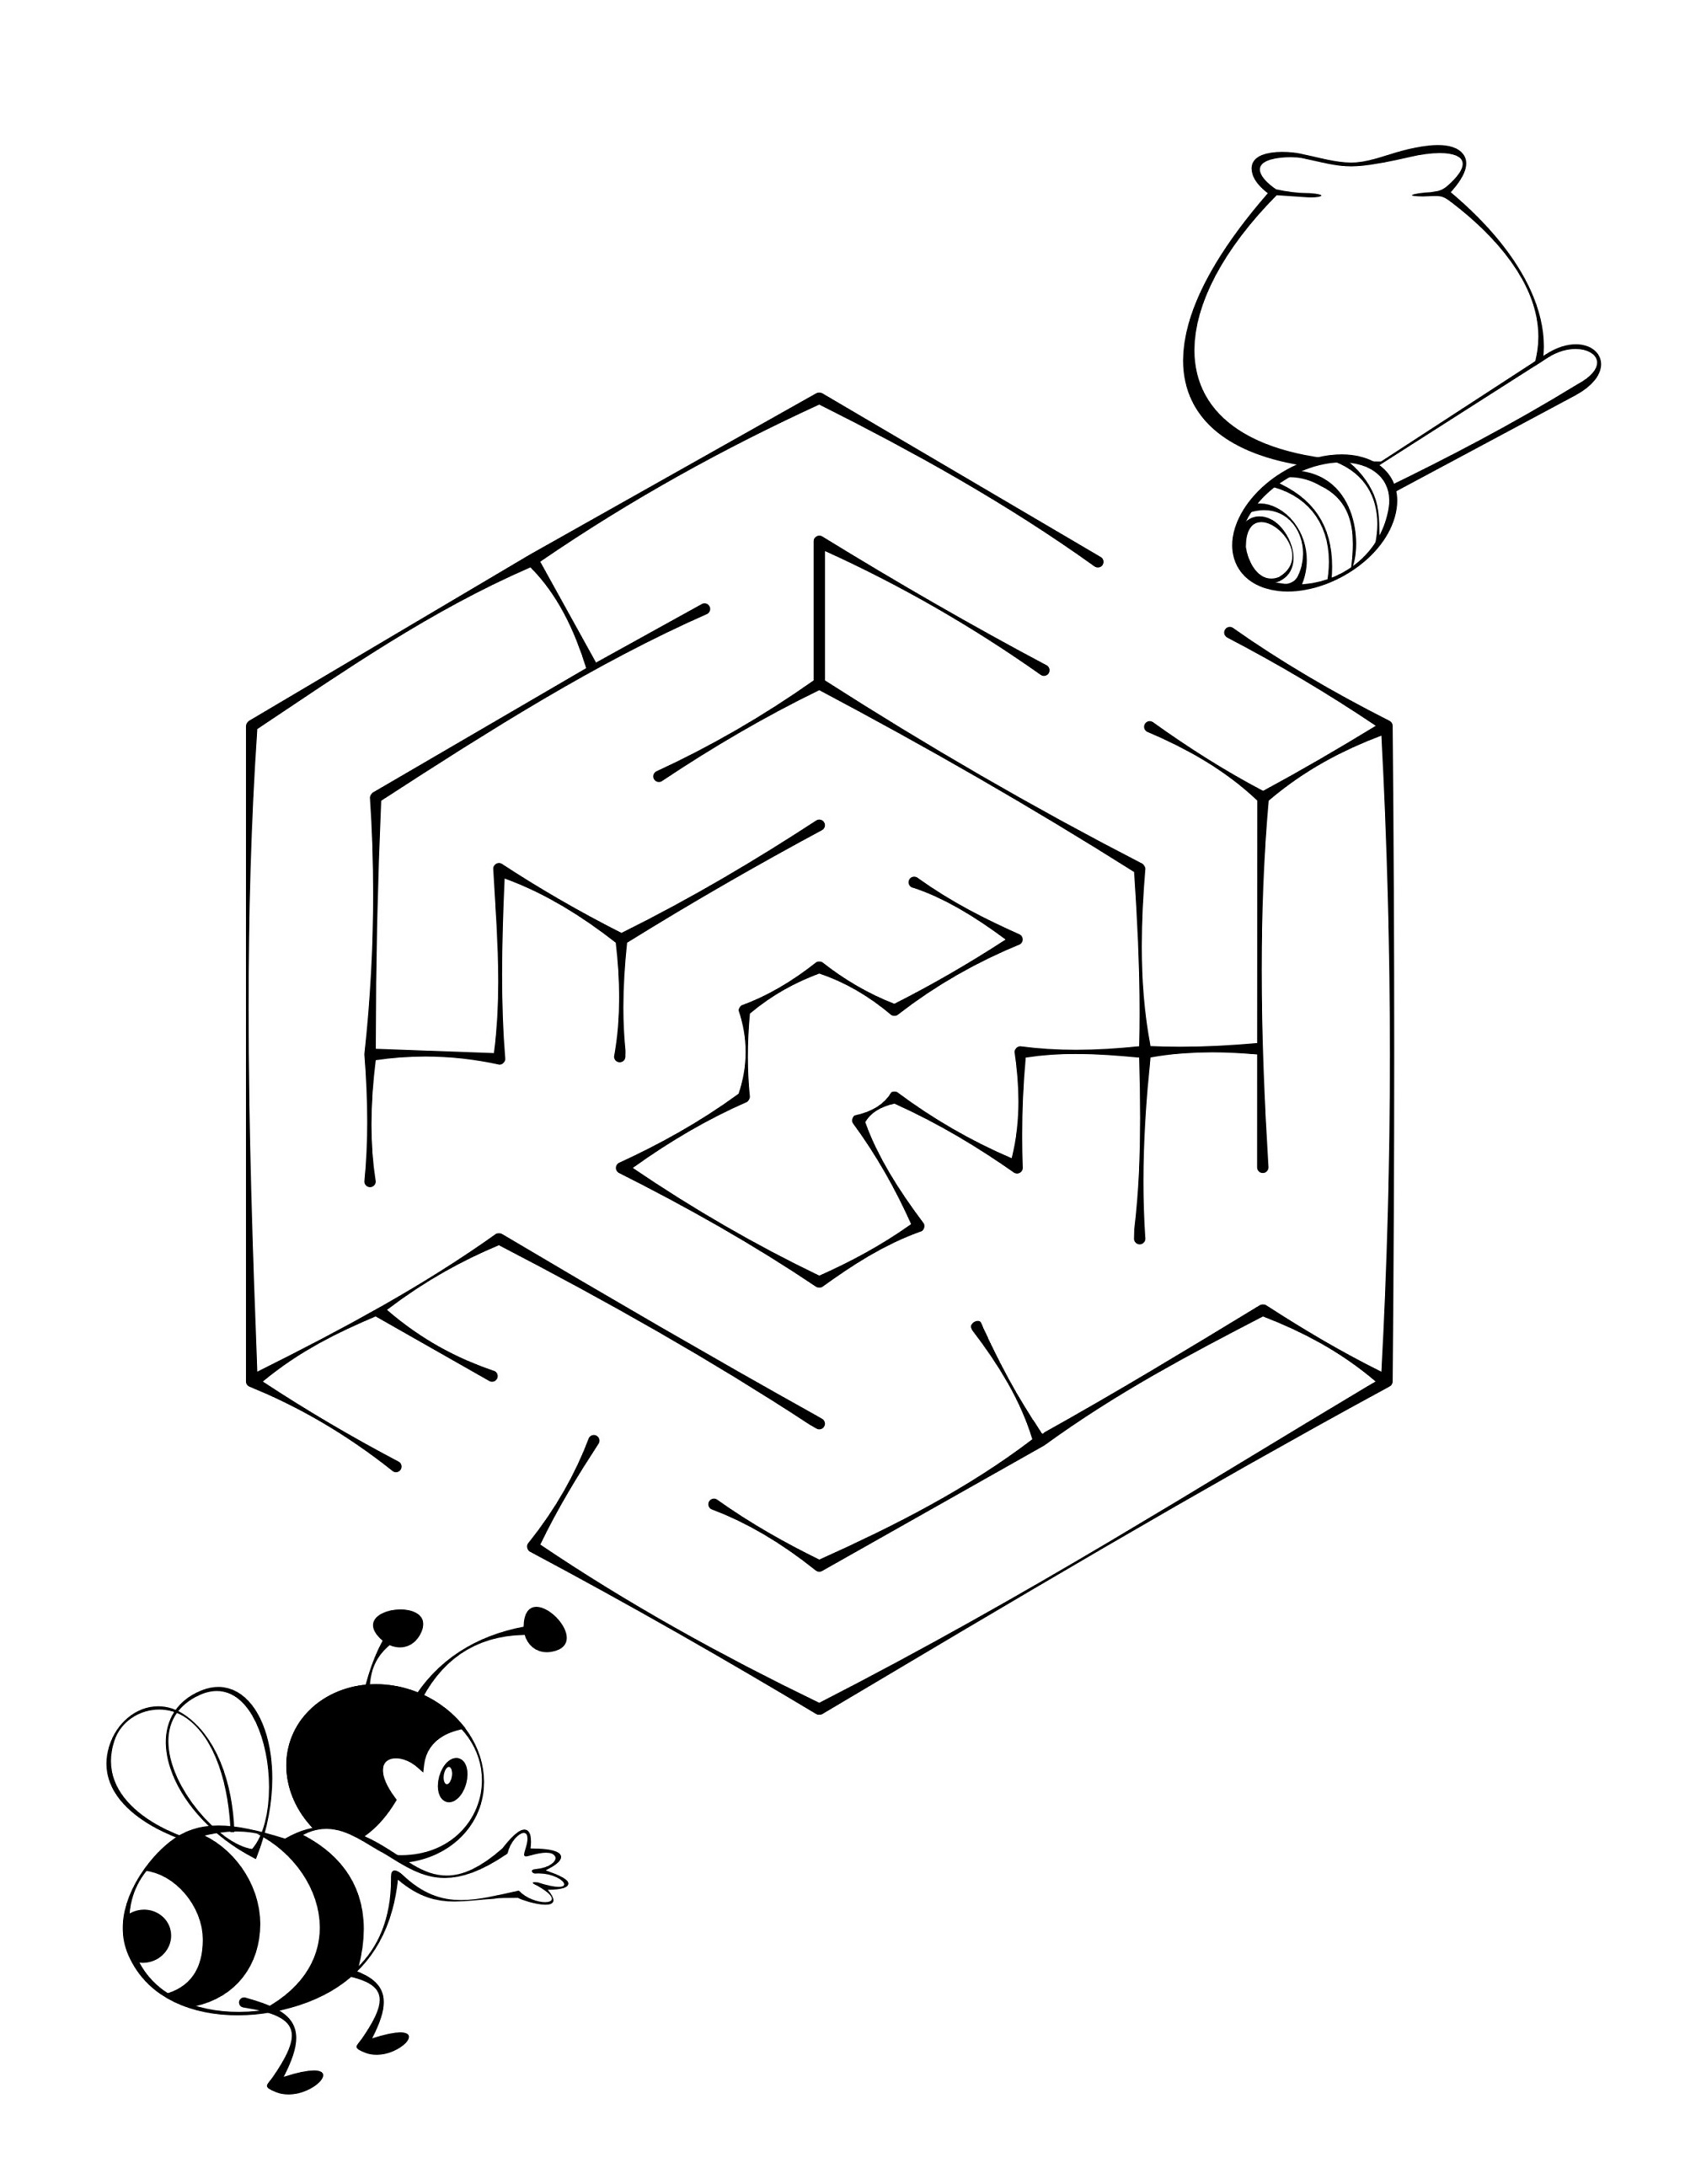 Maze Puzzle For Kids To Print